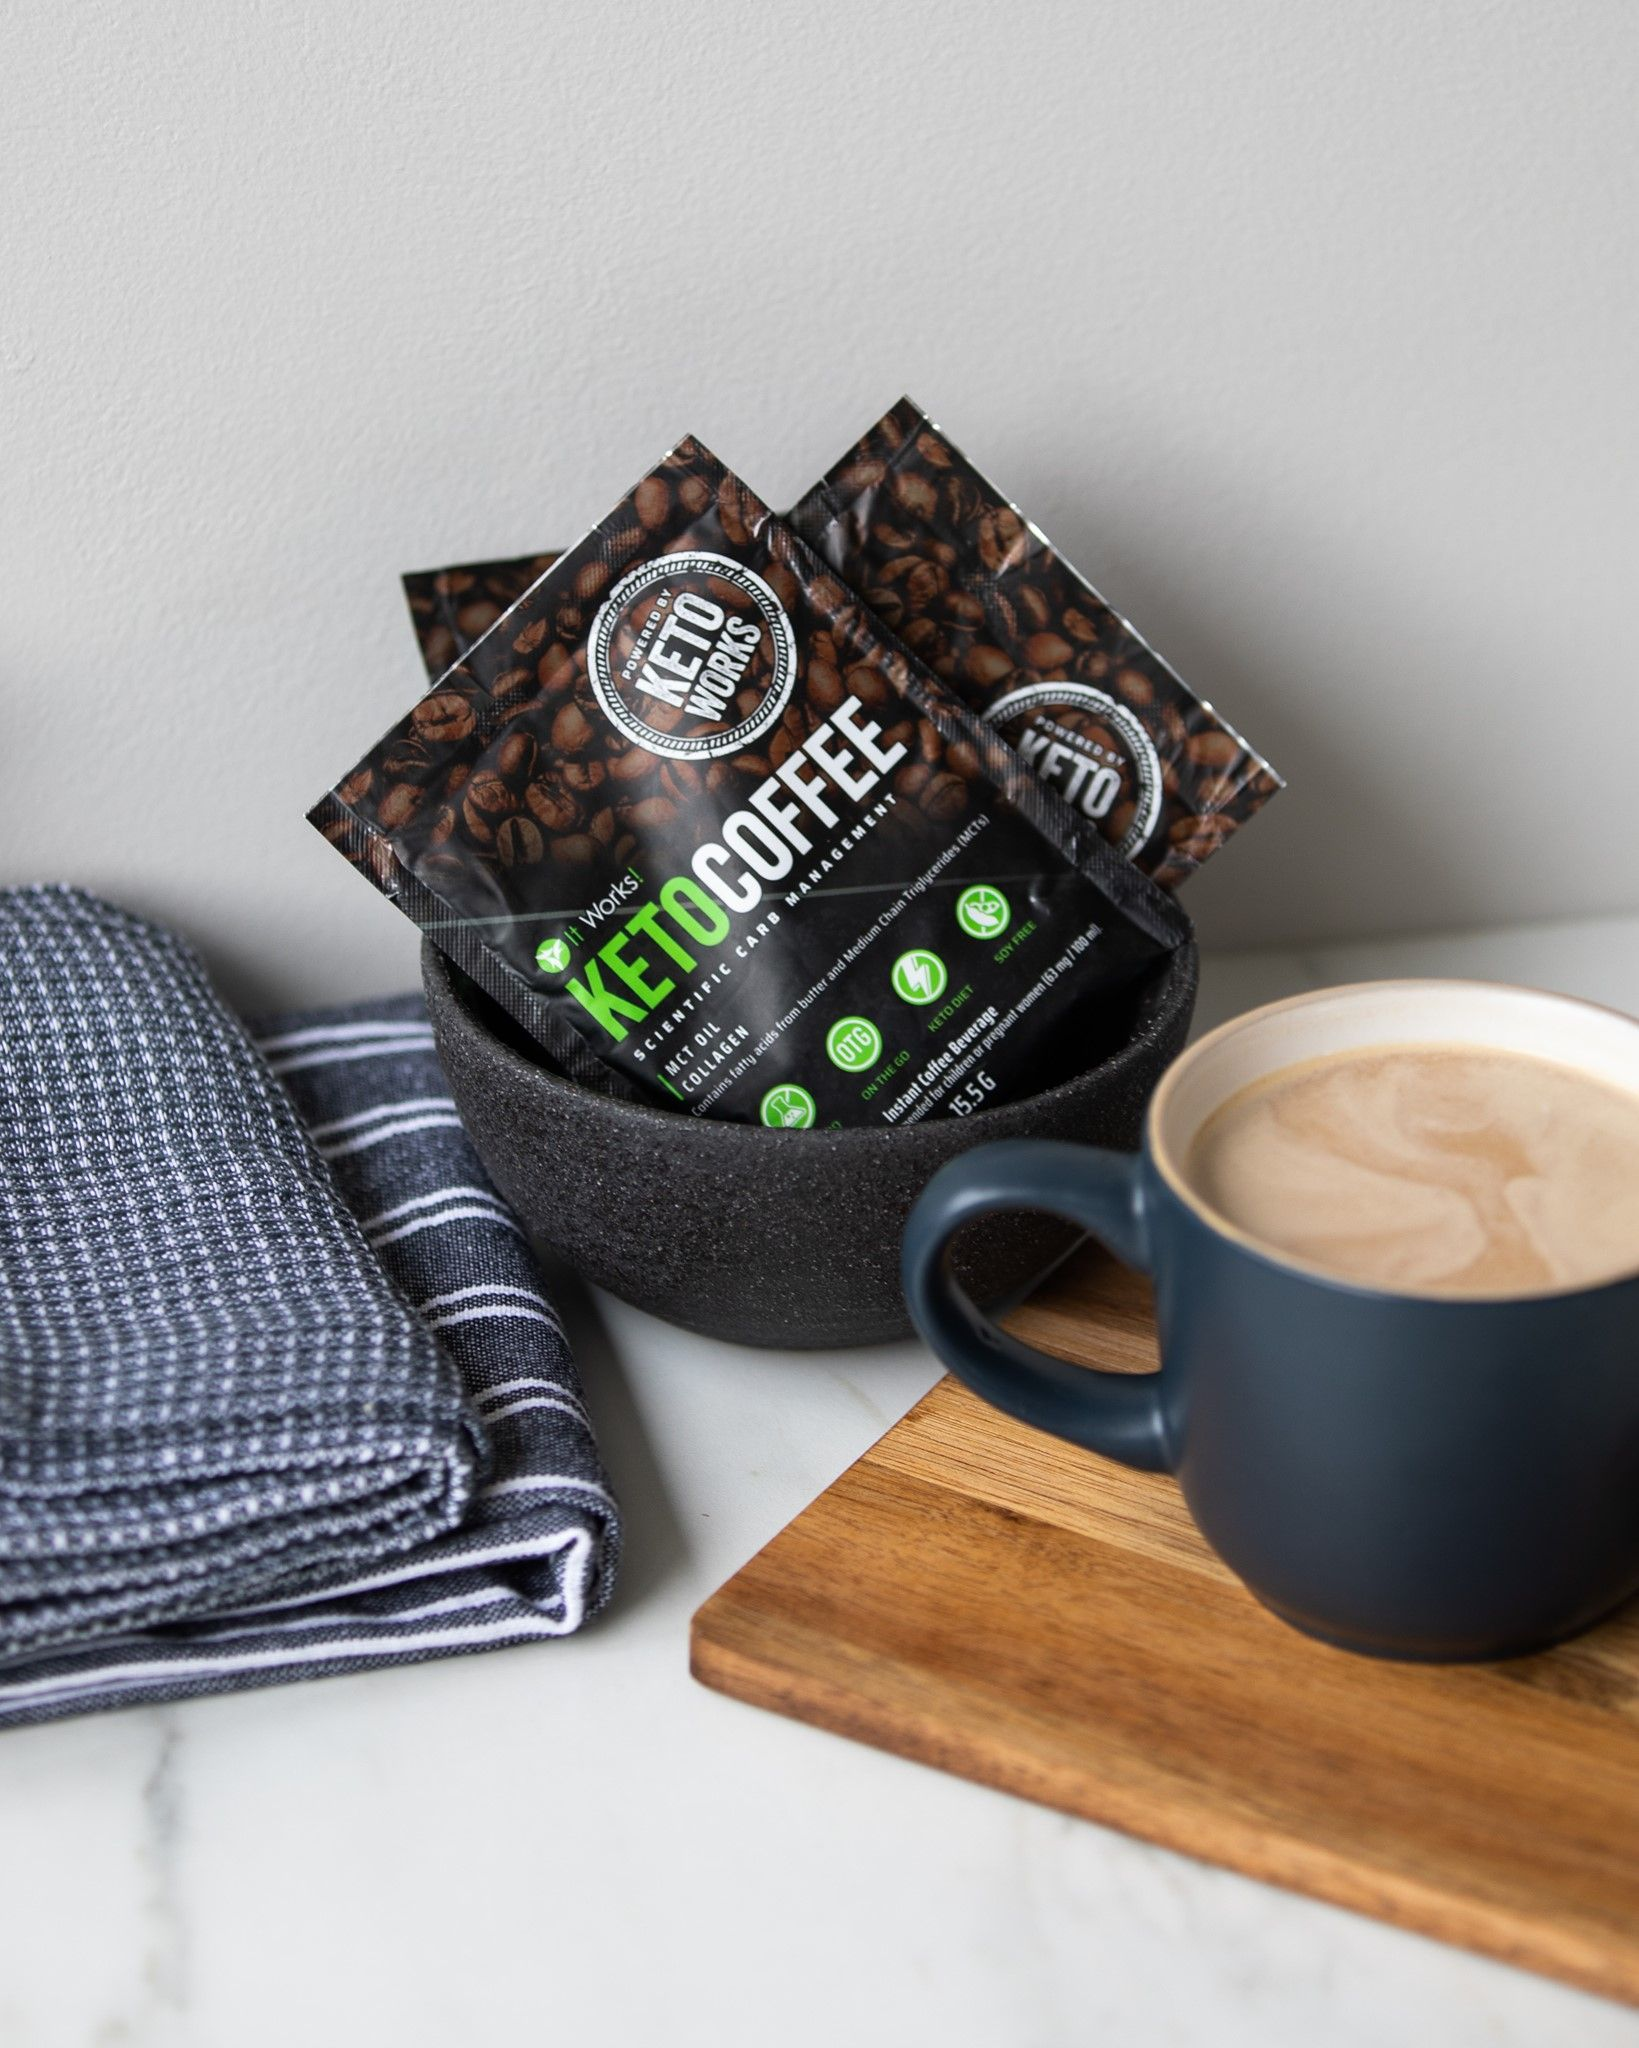 Keto Coffee Instant Coffee packets by It Works powered